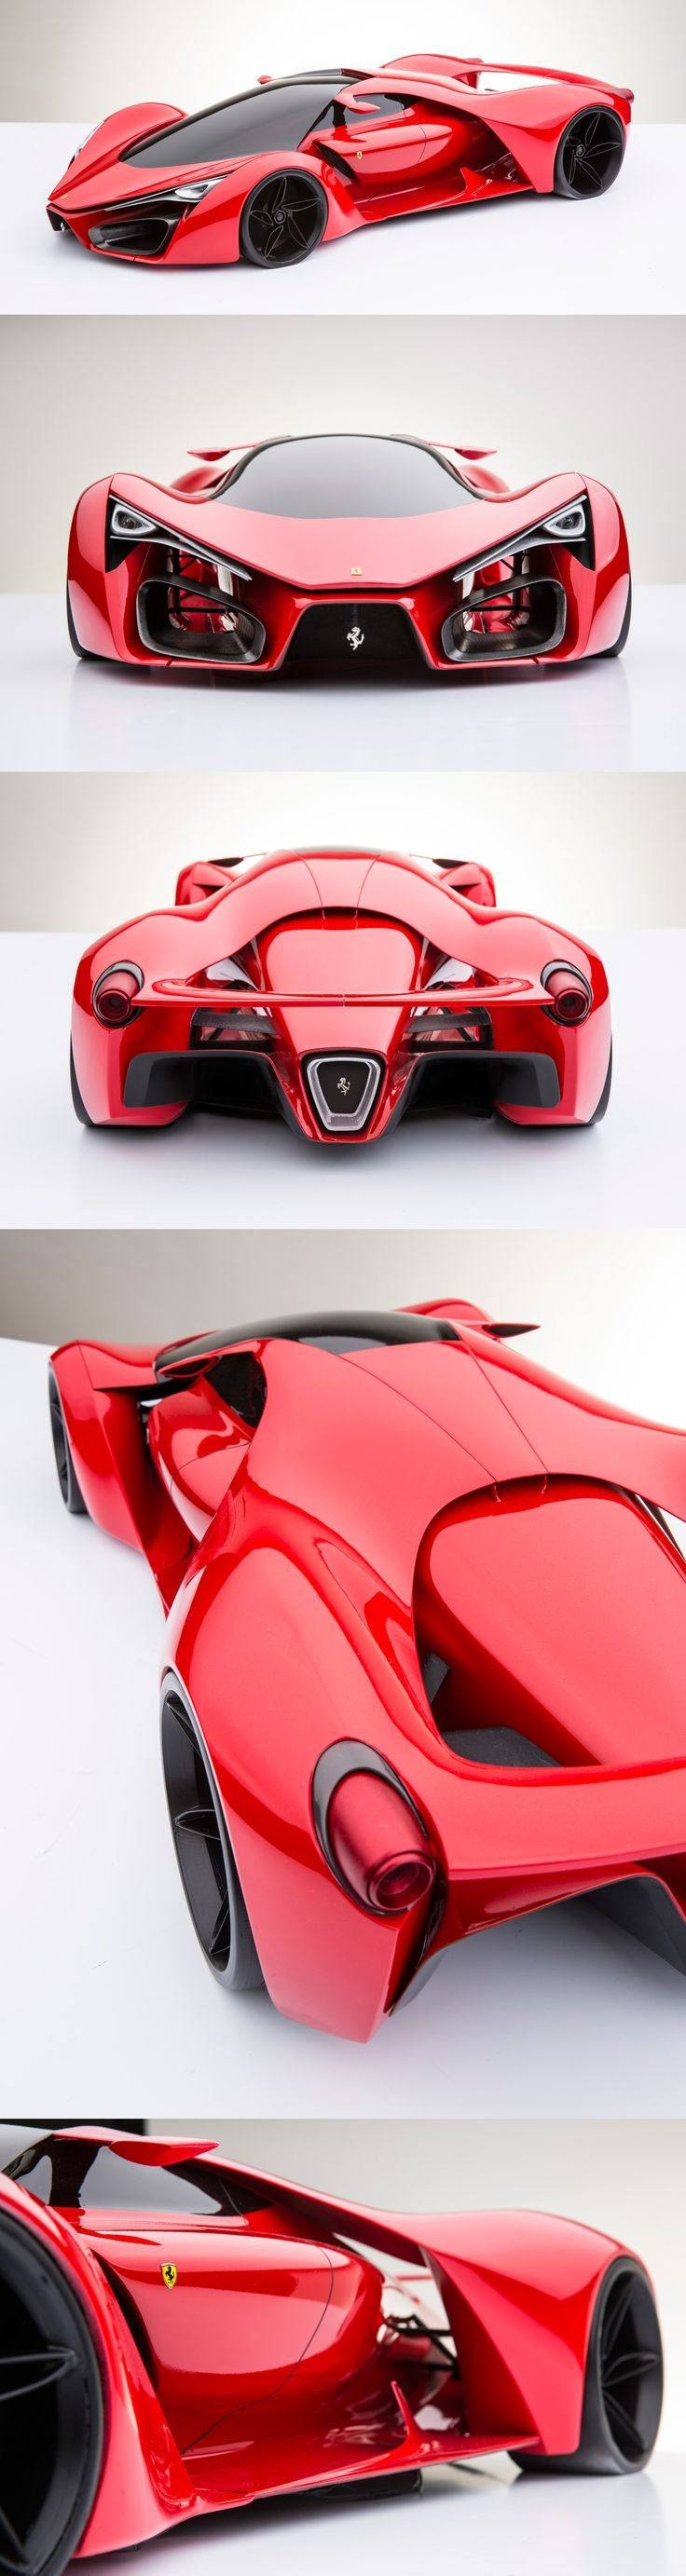 Ferrari F80 Ferrari Concept Low Storage Rates and Great Move-In Specials! Look no further Everest Self Storage is the place when you're out of space! Call today or stop by for a tour of our facility! Indoor Parking Available! Ideal for Classic Cars, Motorcycles, ATV's & Jet Skies 626-288-8182